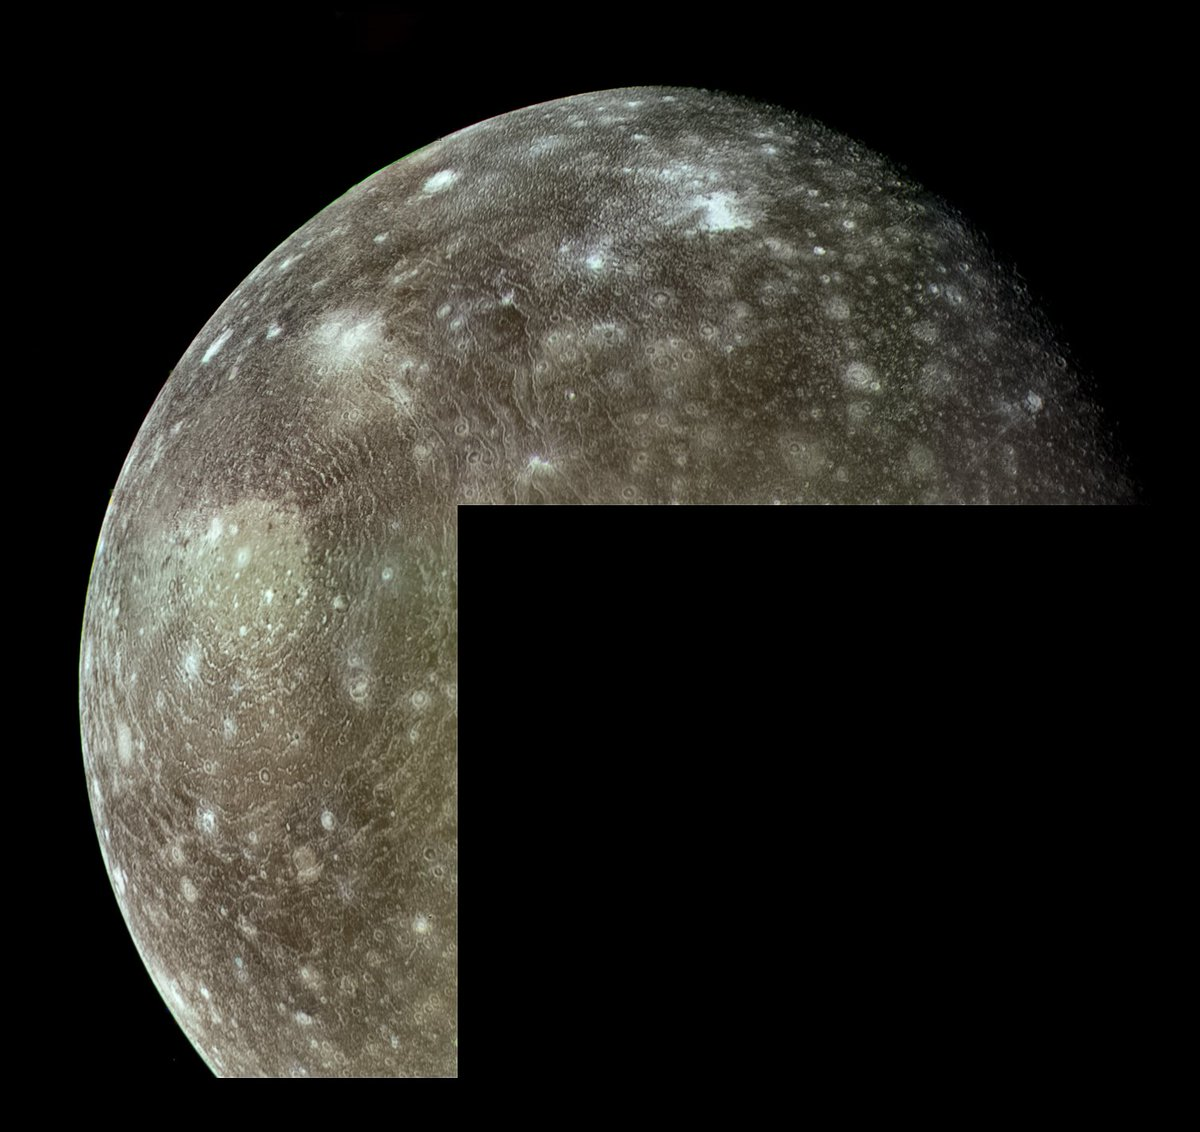 Valhalla Crater on Callisto in Green/Blue/Violet, imaged by Voyager 1 in March, 1979 - https://t.co/LZ8Q43MSAl https://t.co/wLyxy2Lm0F